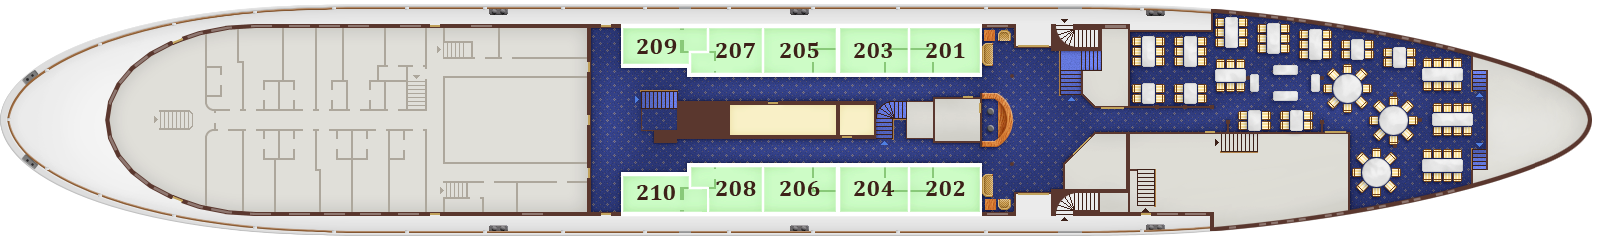 Deck Plan. Main Deck